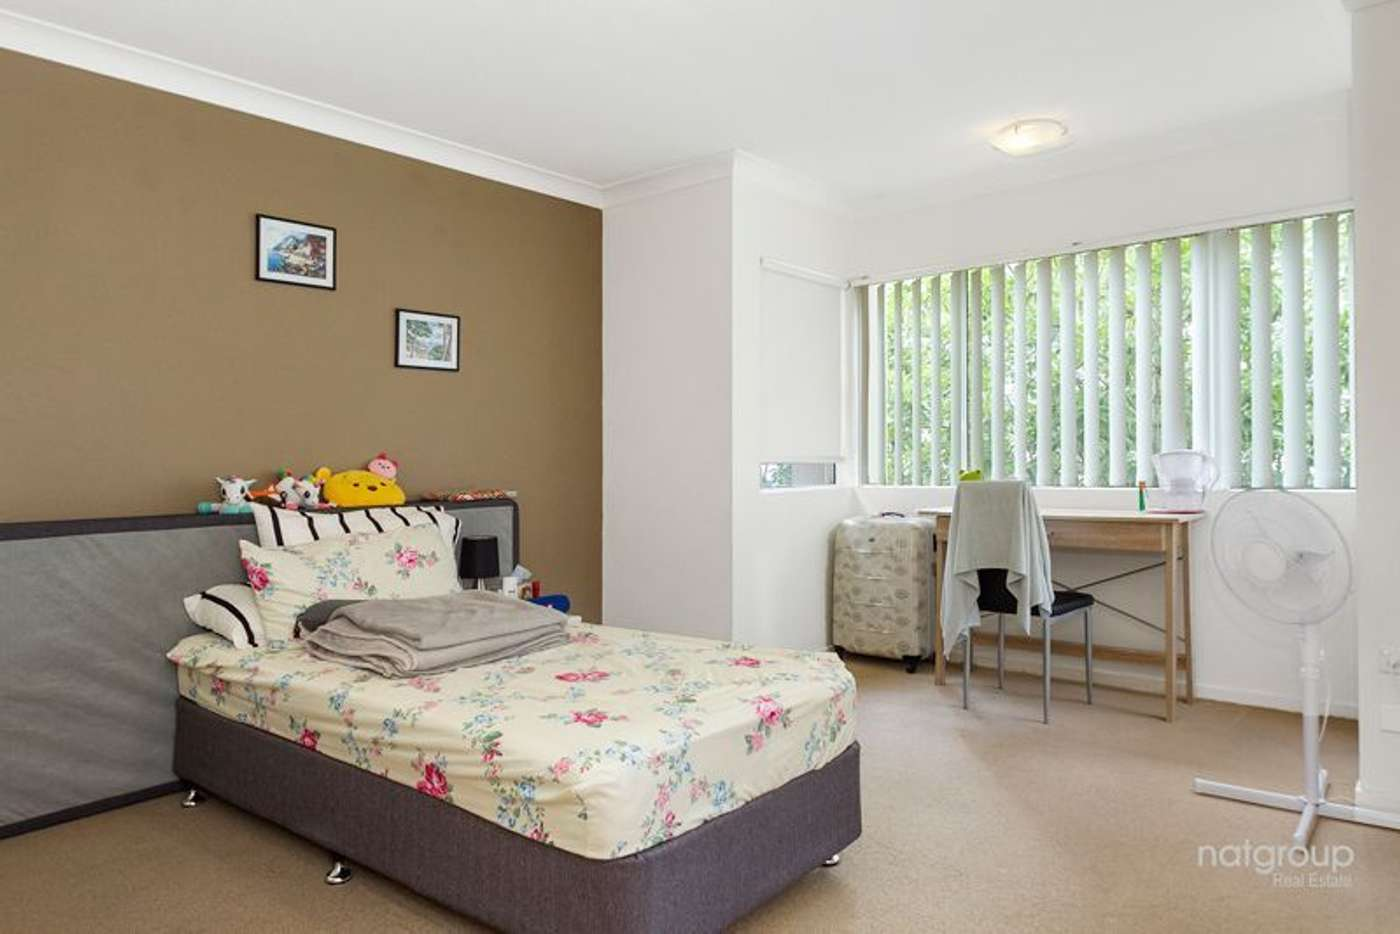 Sixth view of Homely unit listing, 905/33 Clark Street, Biggera Waters QLD 4216